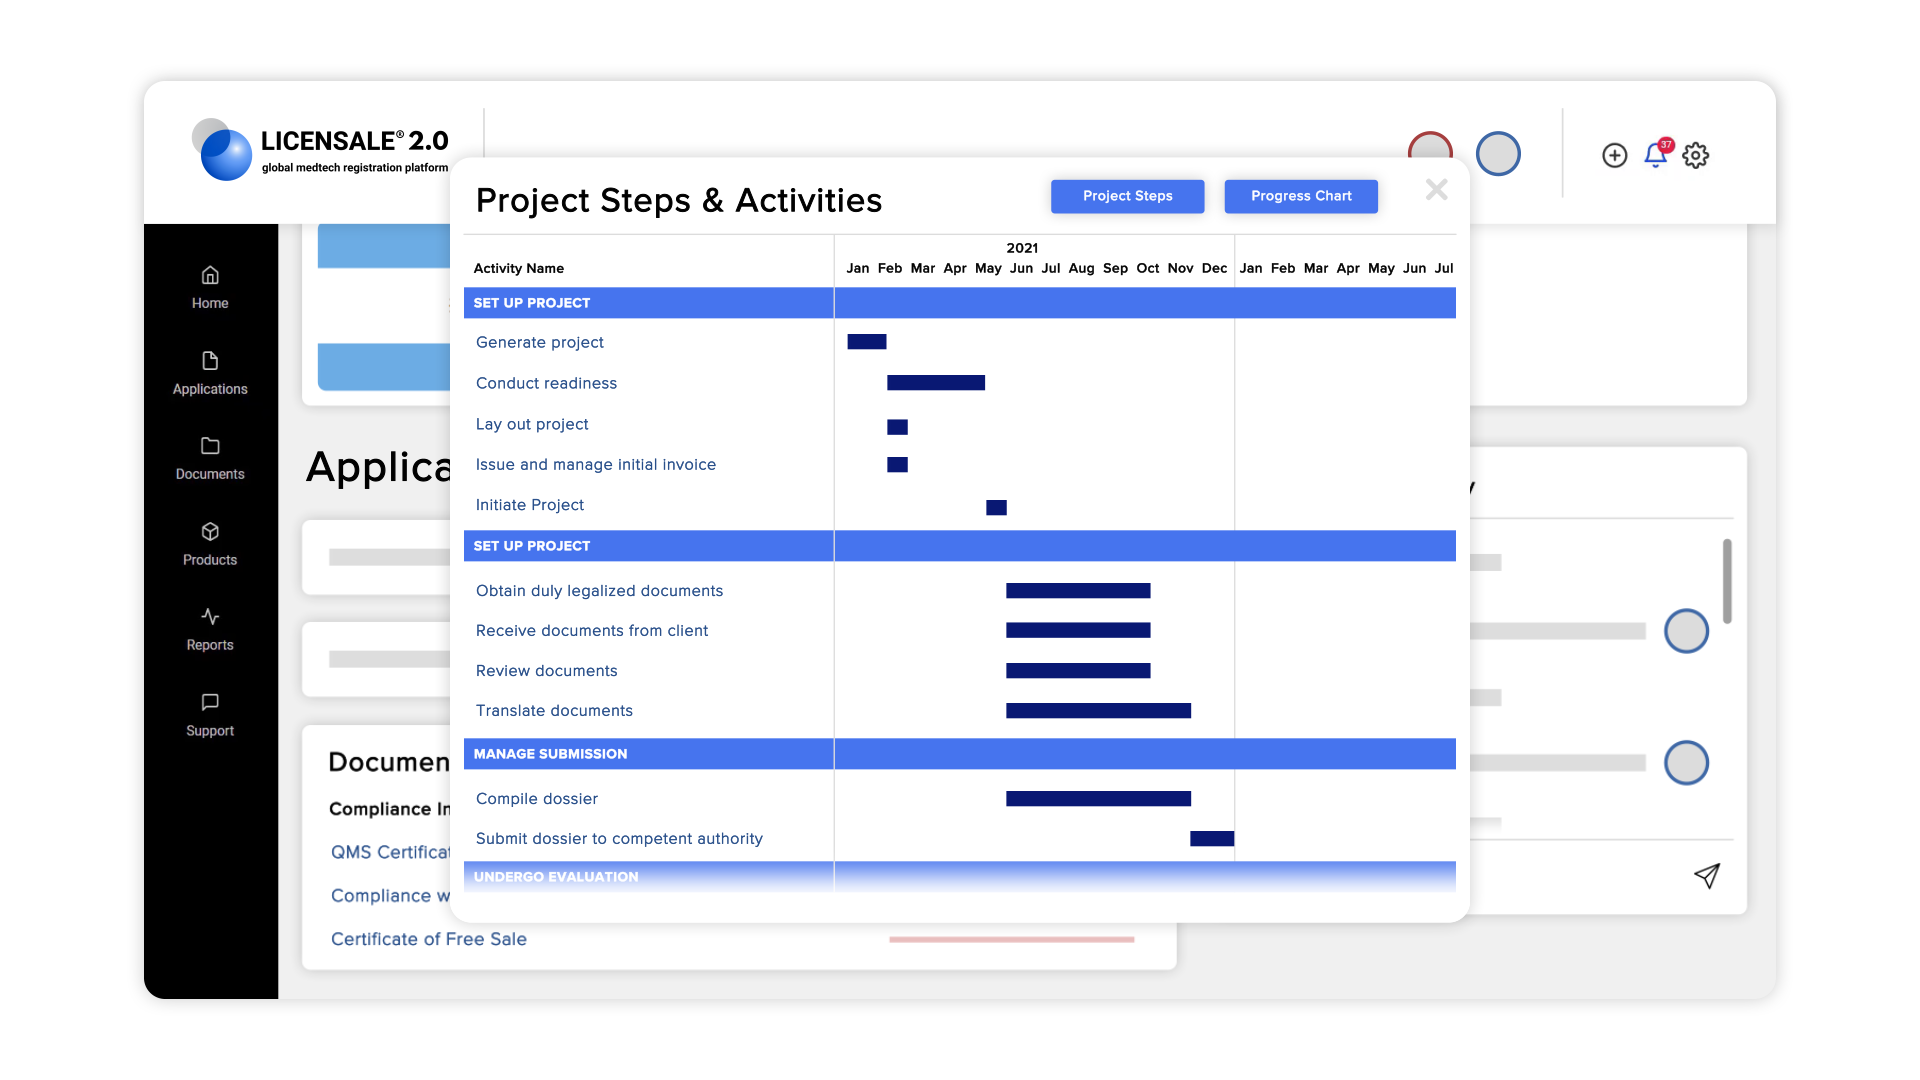 Project management page with process checklist on LICENSALE 2.0 - Medical Device Registration Software